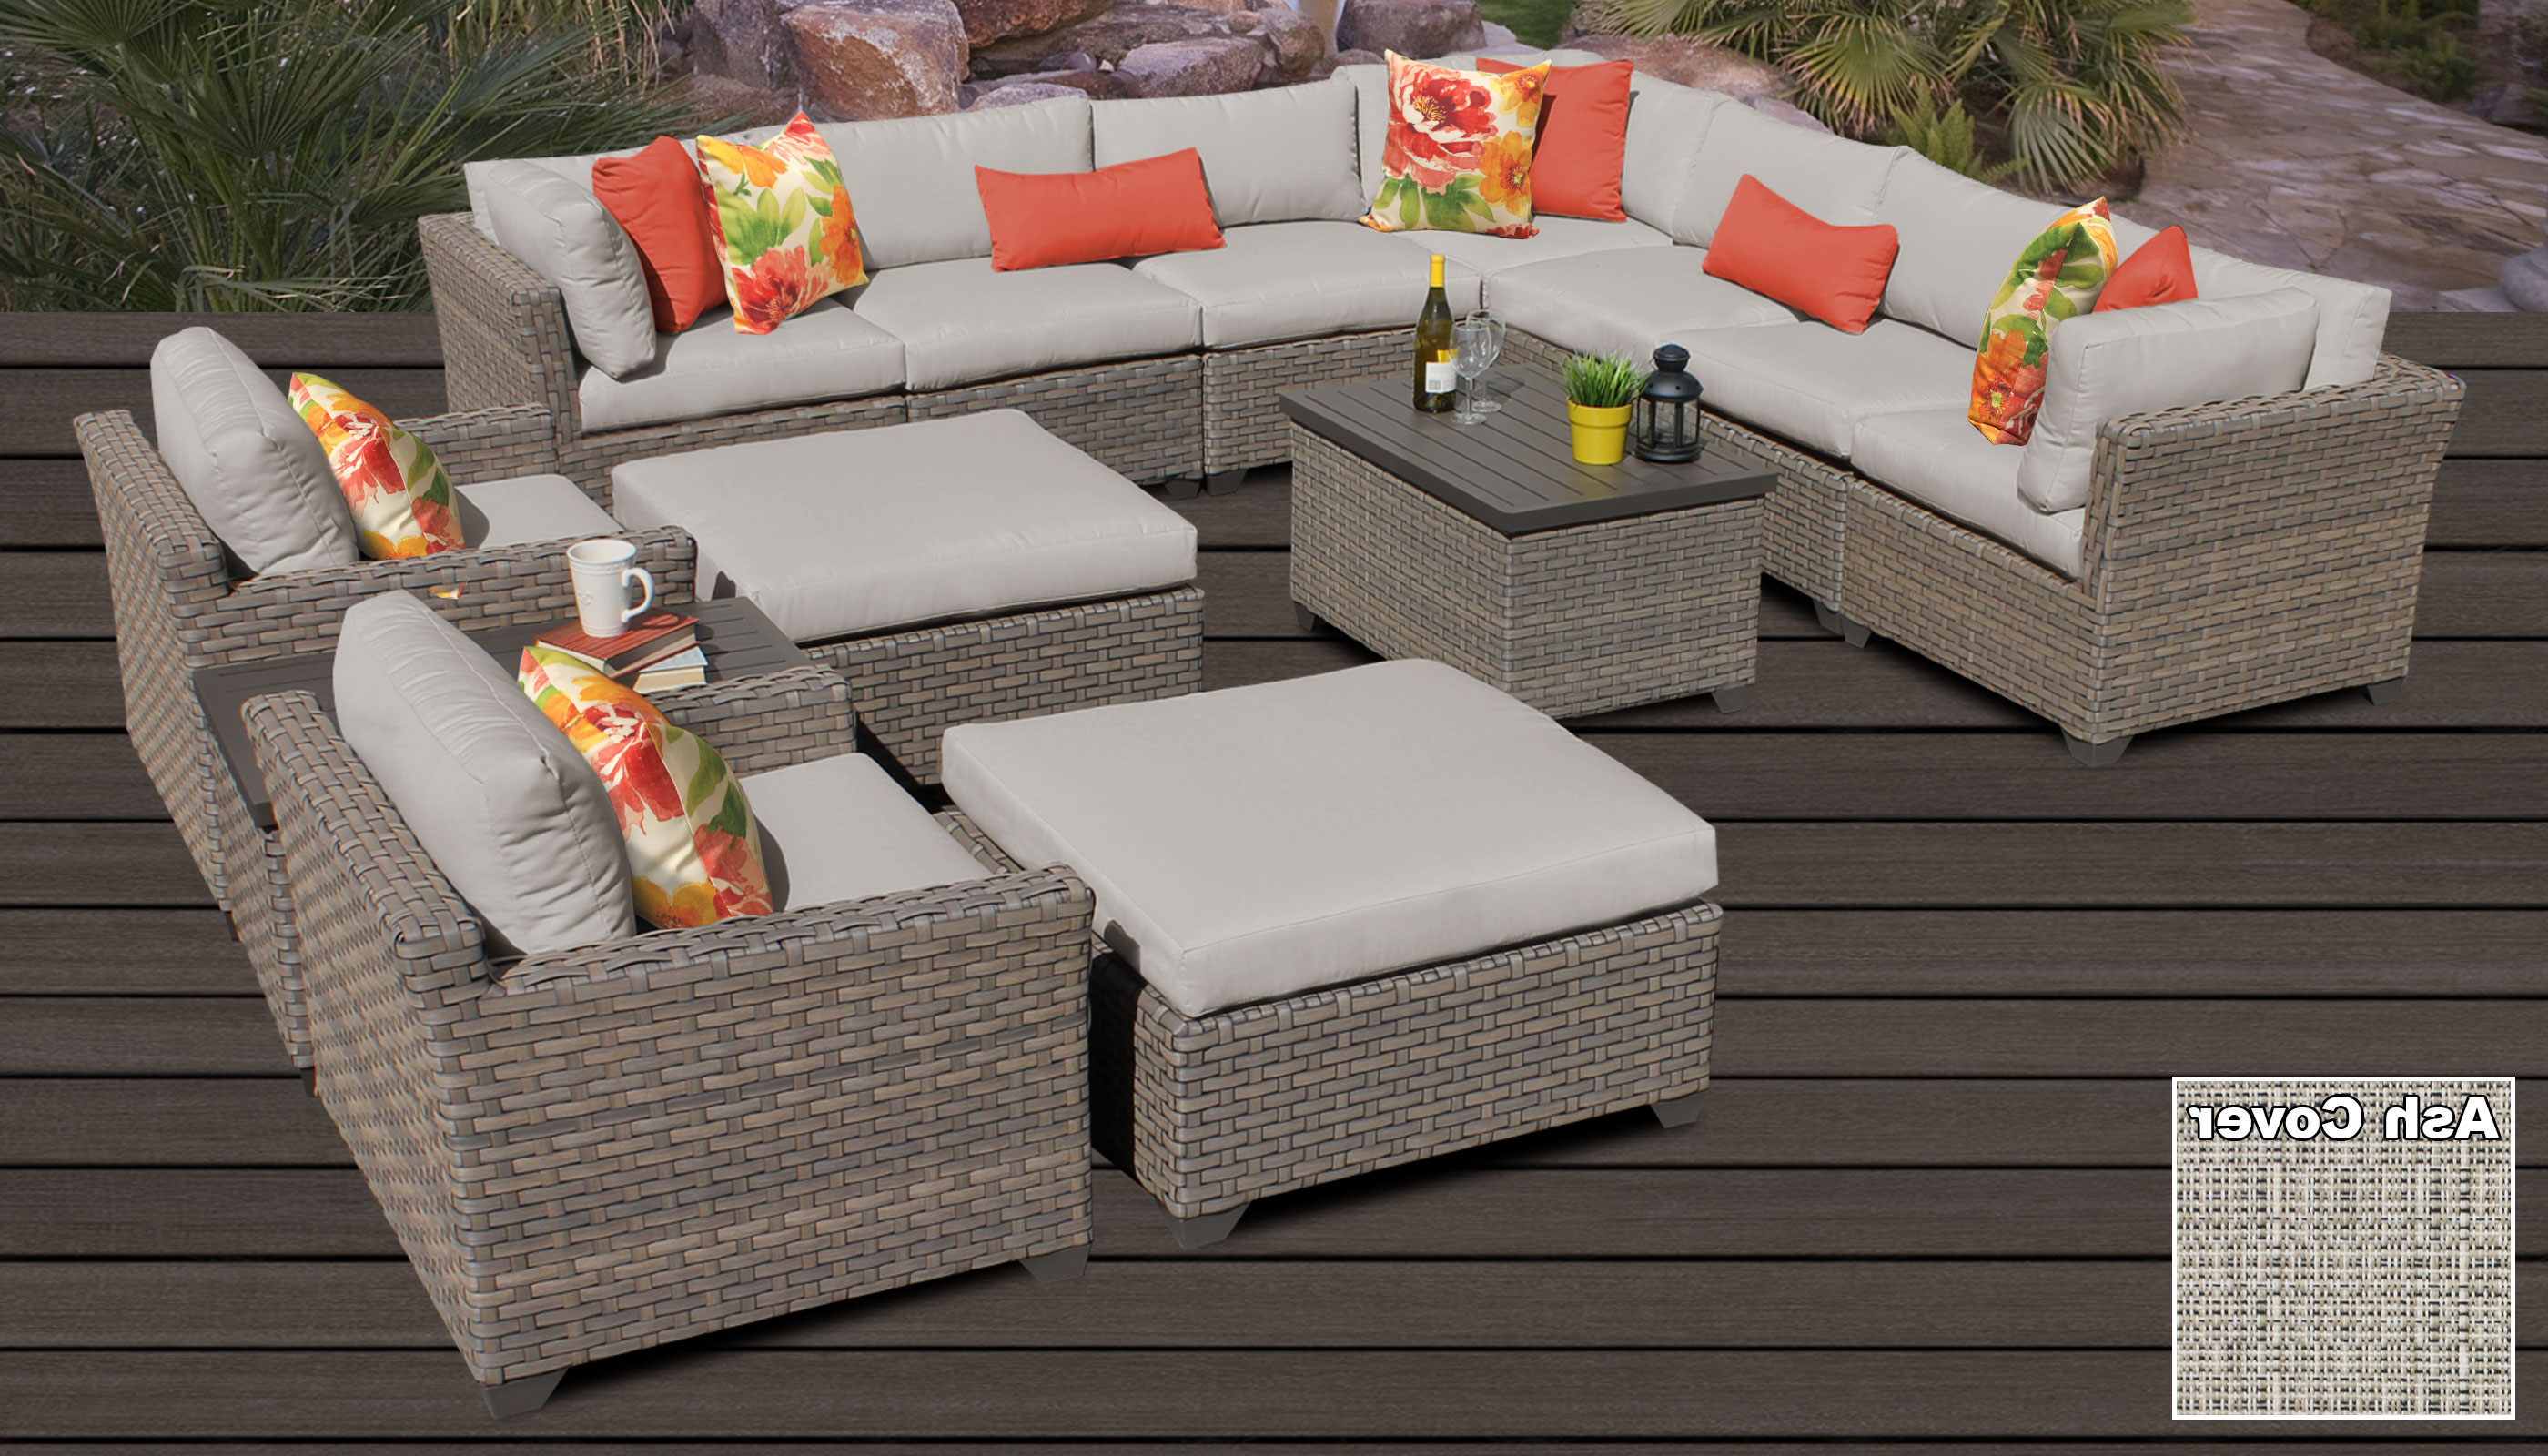 Outdoor 13 Piece Wicker Patio Sets With Cushions With Well Known Monterey 13 Piece Outdoor Wicker Patio Furniture Set 13a (View 8 of 25)